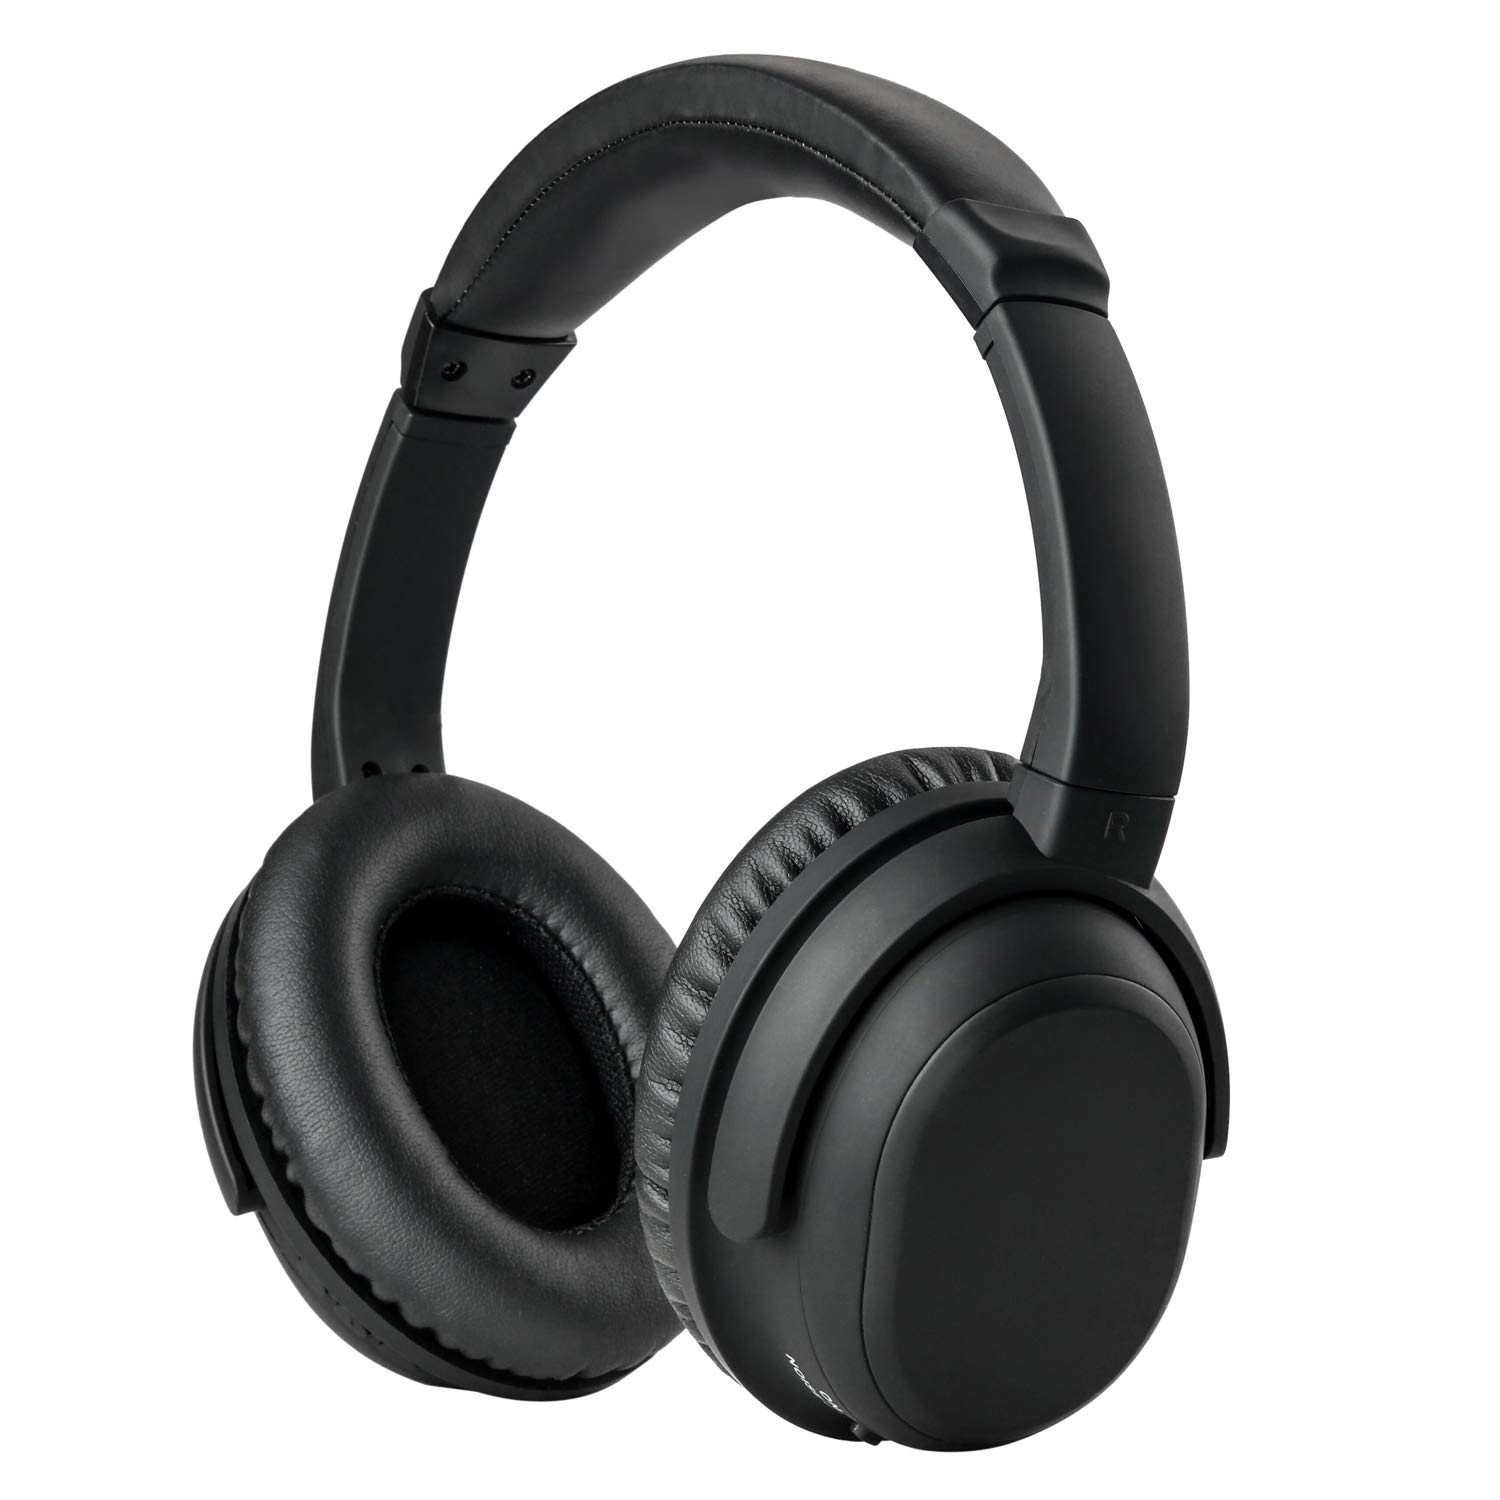 Auriculares Cobker Plegable Cancelacion de Ruido Activa Bluetooth HiFi Stereo Inalambrico Over-Ear Deep Bass Headset Mic